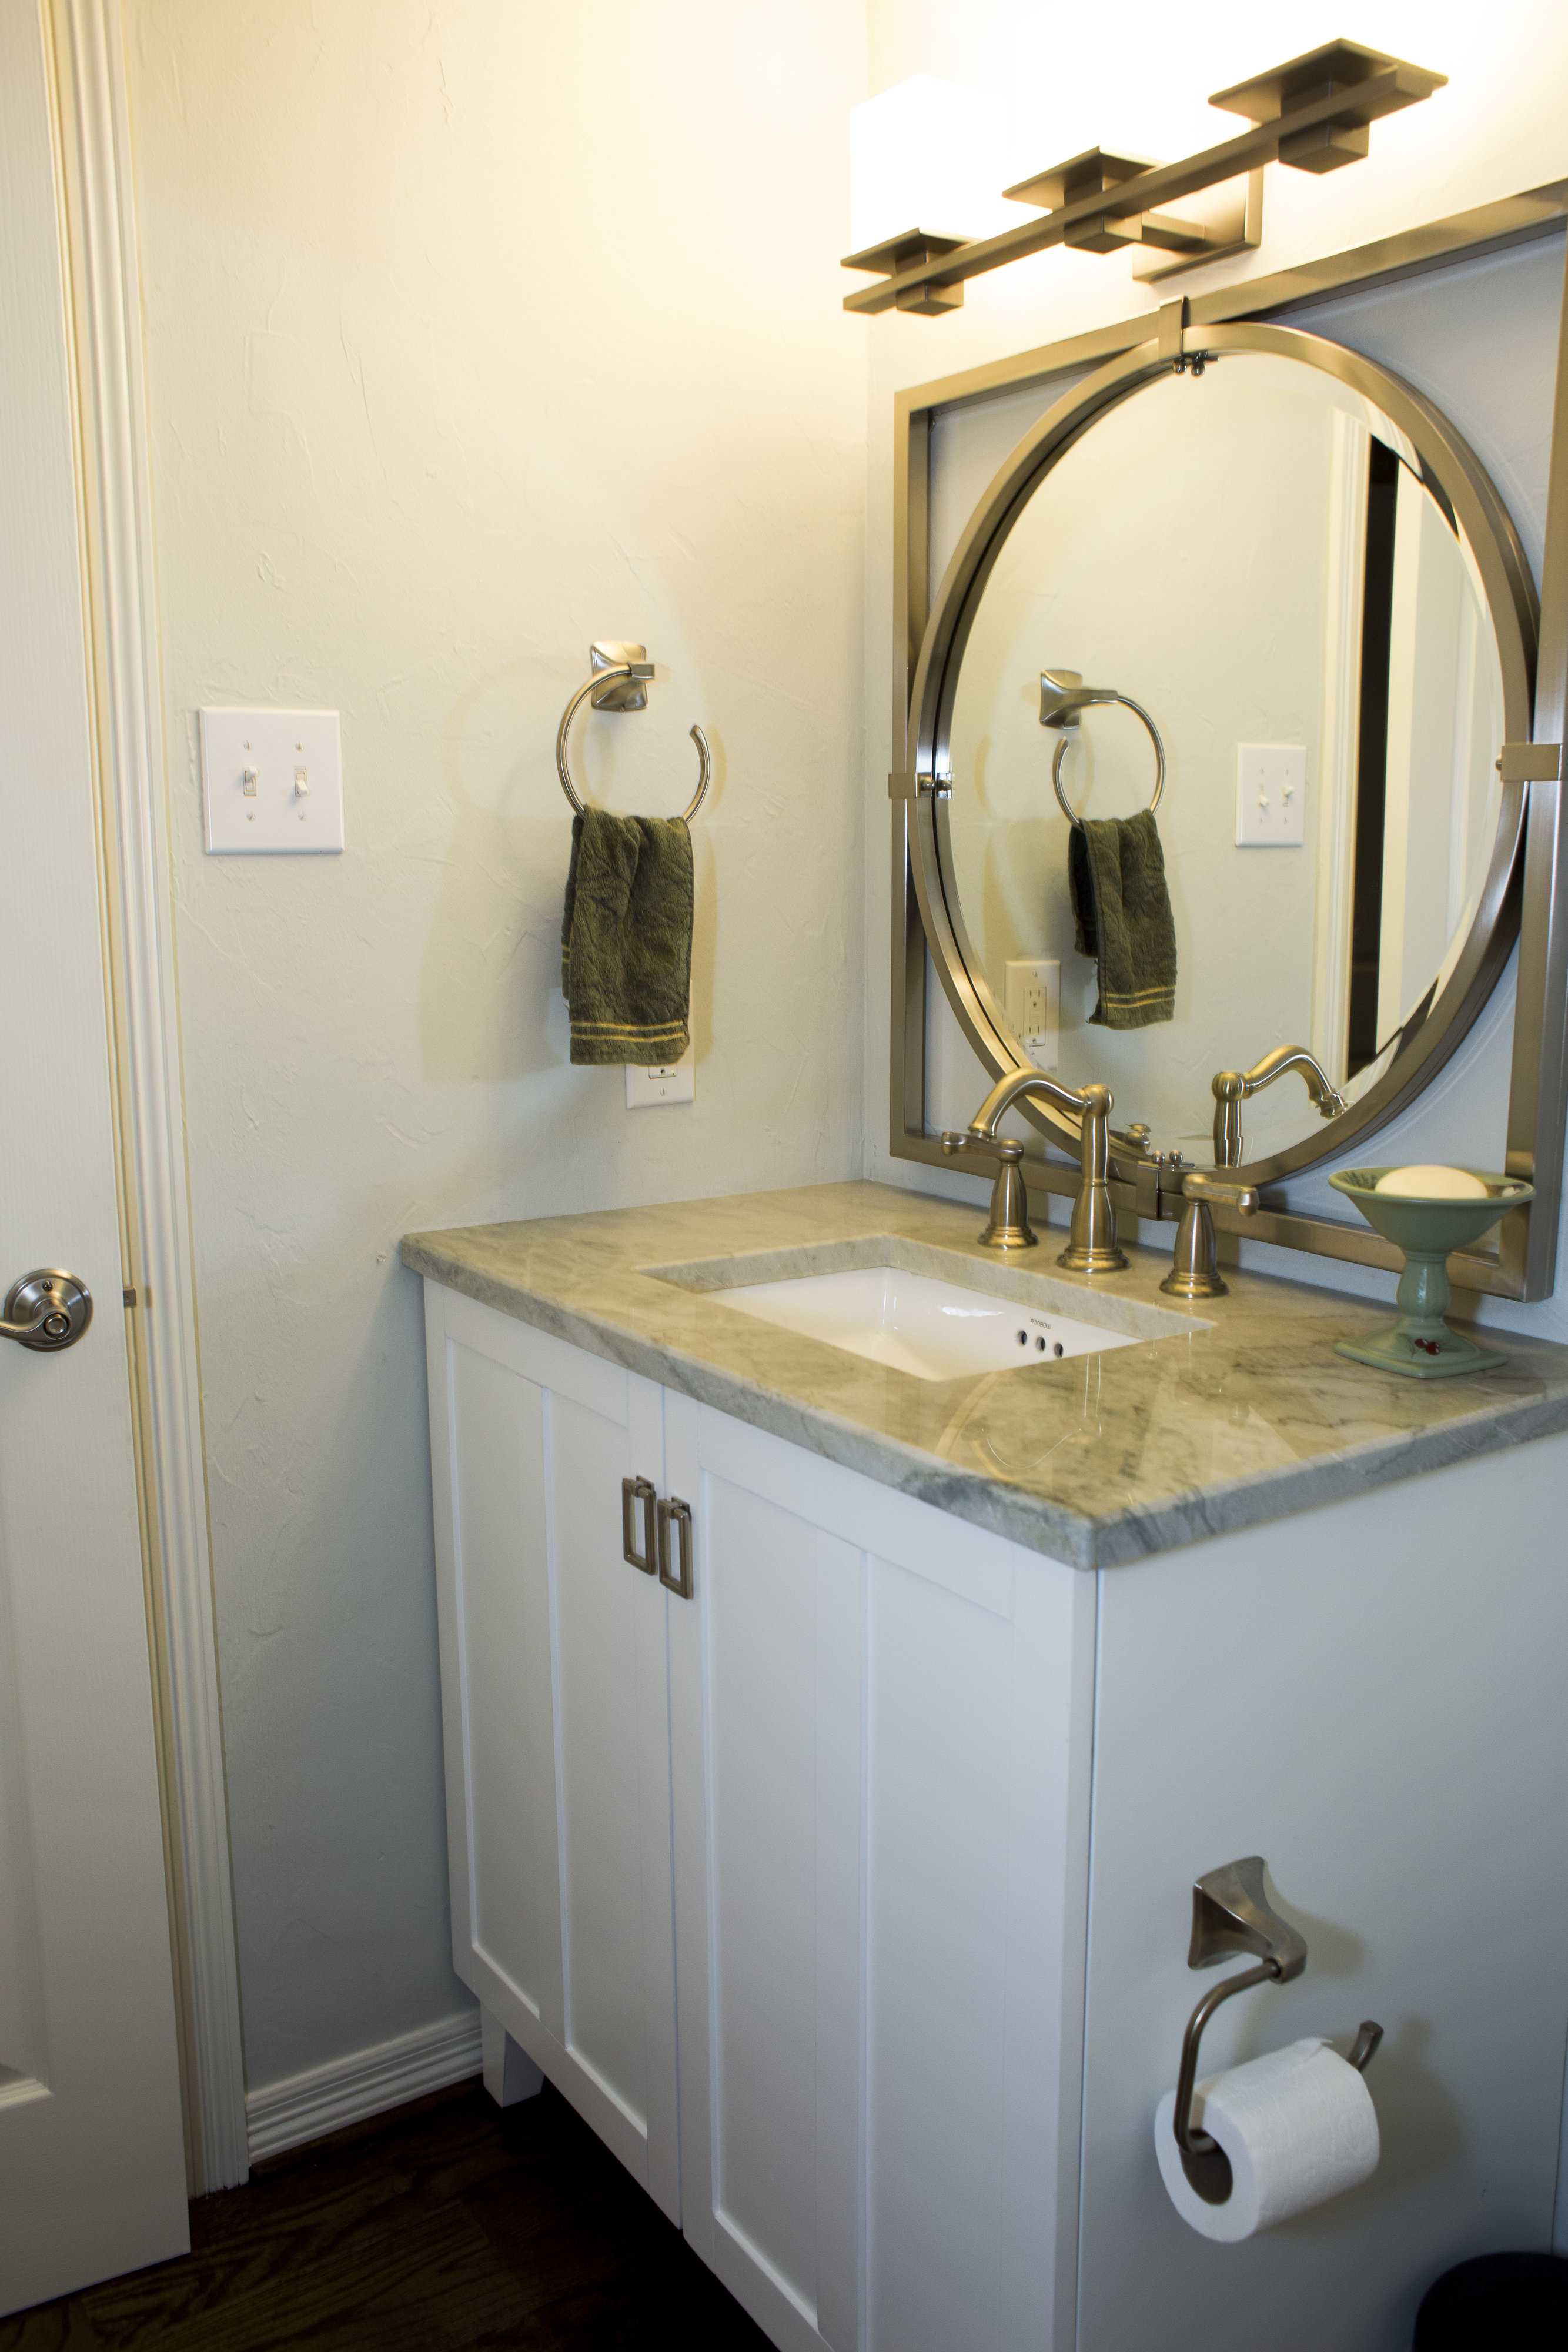 remodel works bath & kitchen artwork ideas j williams construction and remodeling inc our work